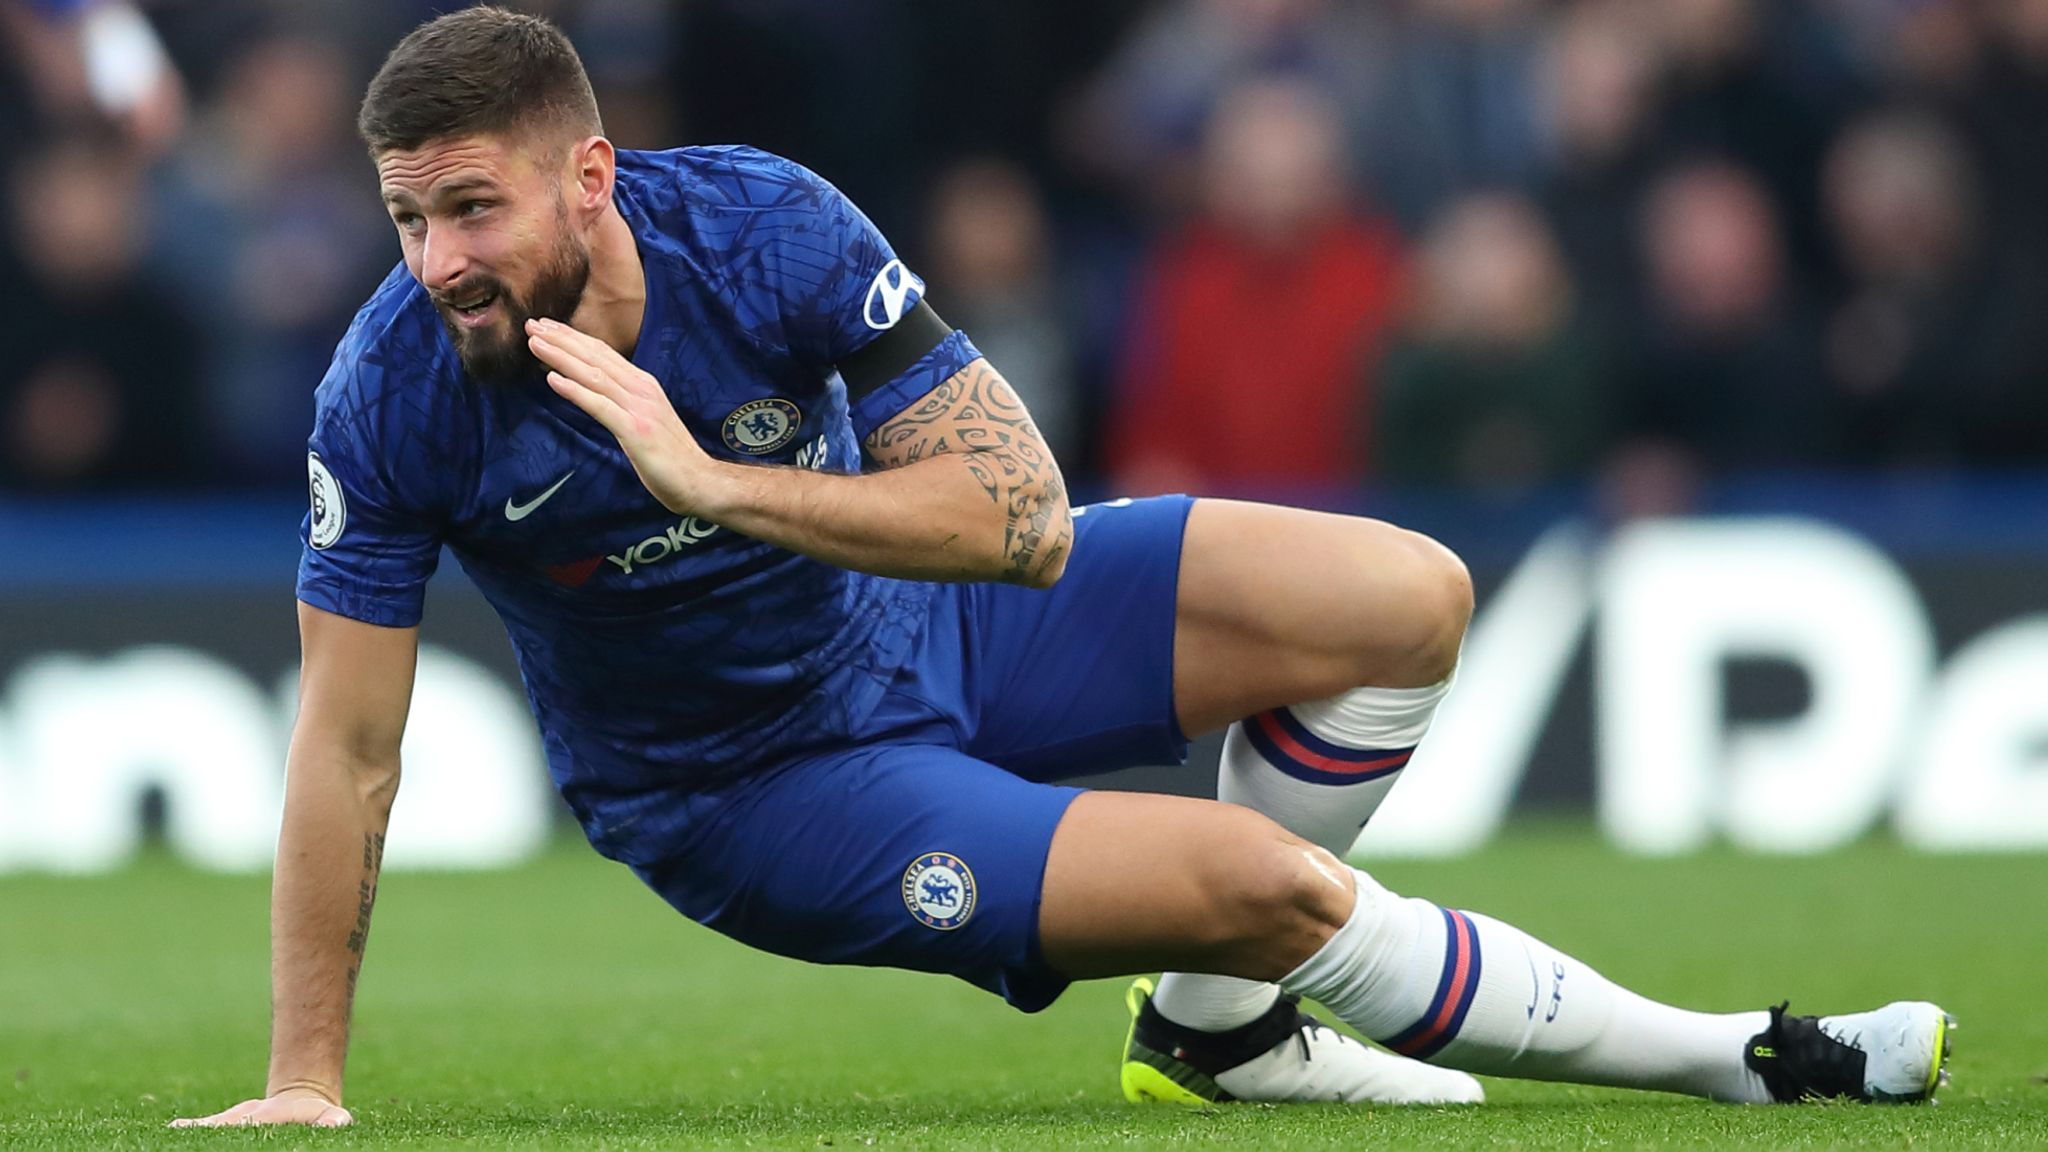 Victor Moses, Christian Eriksen and OIivier Giroud: Inter Milan chief talks Premier League transfers